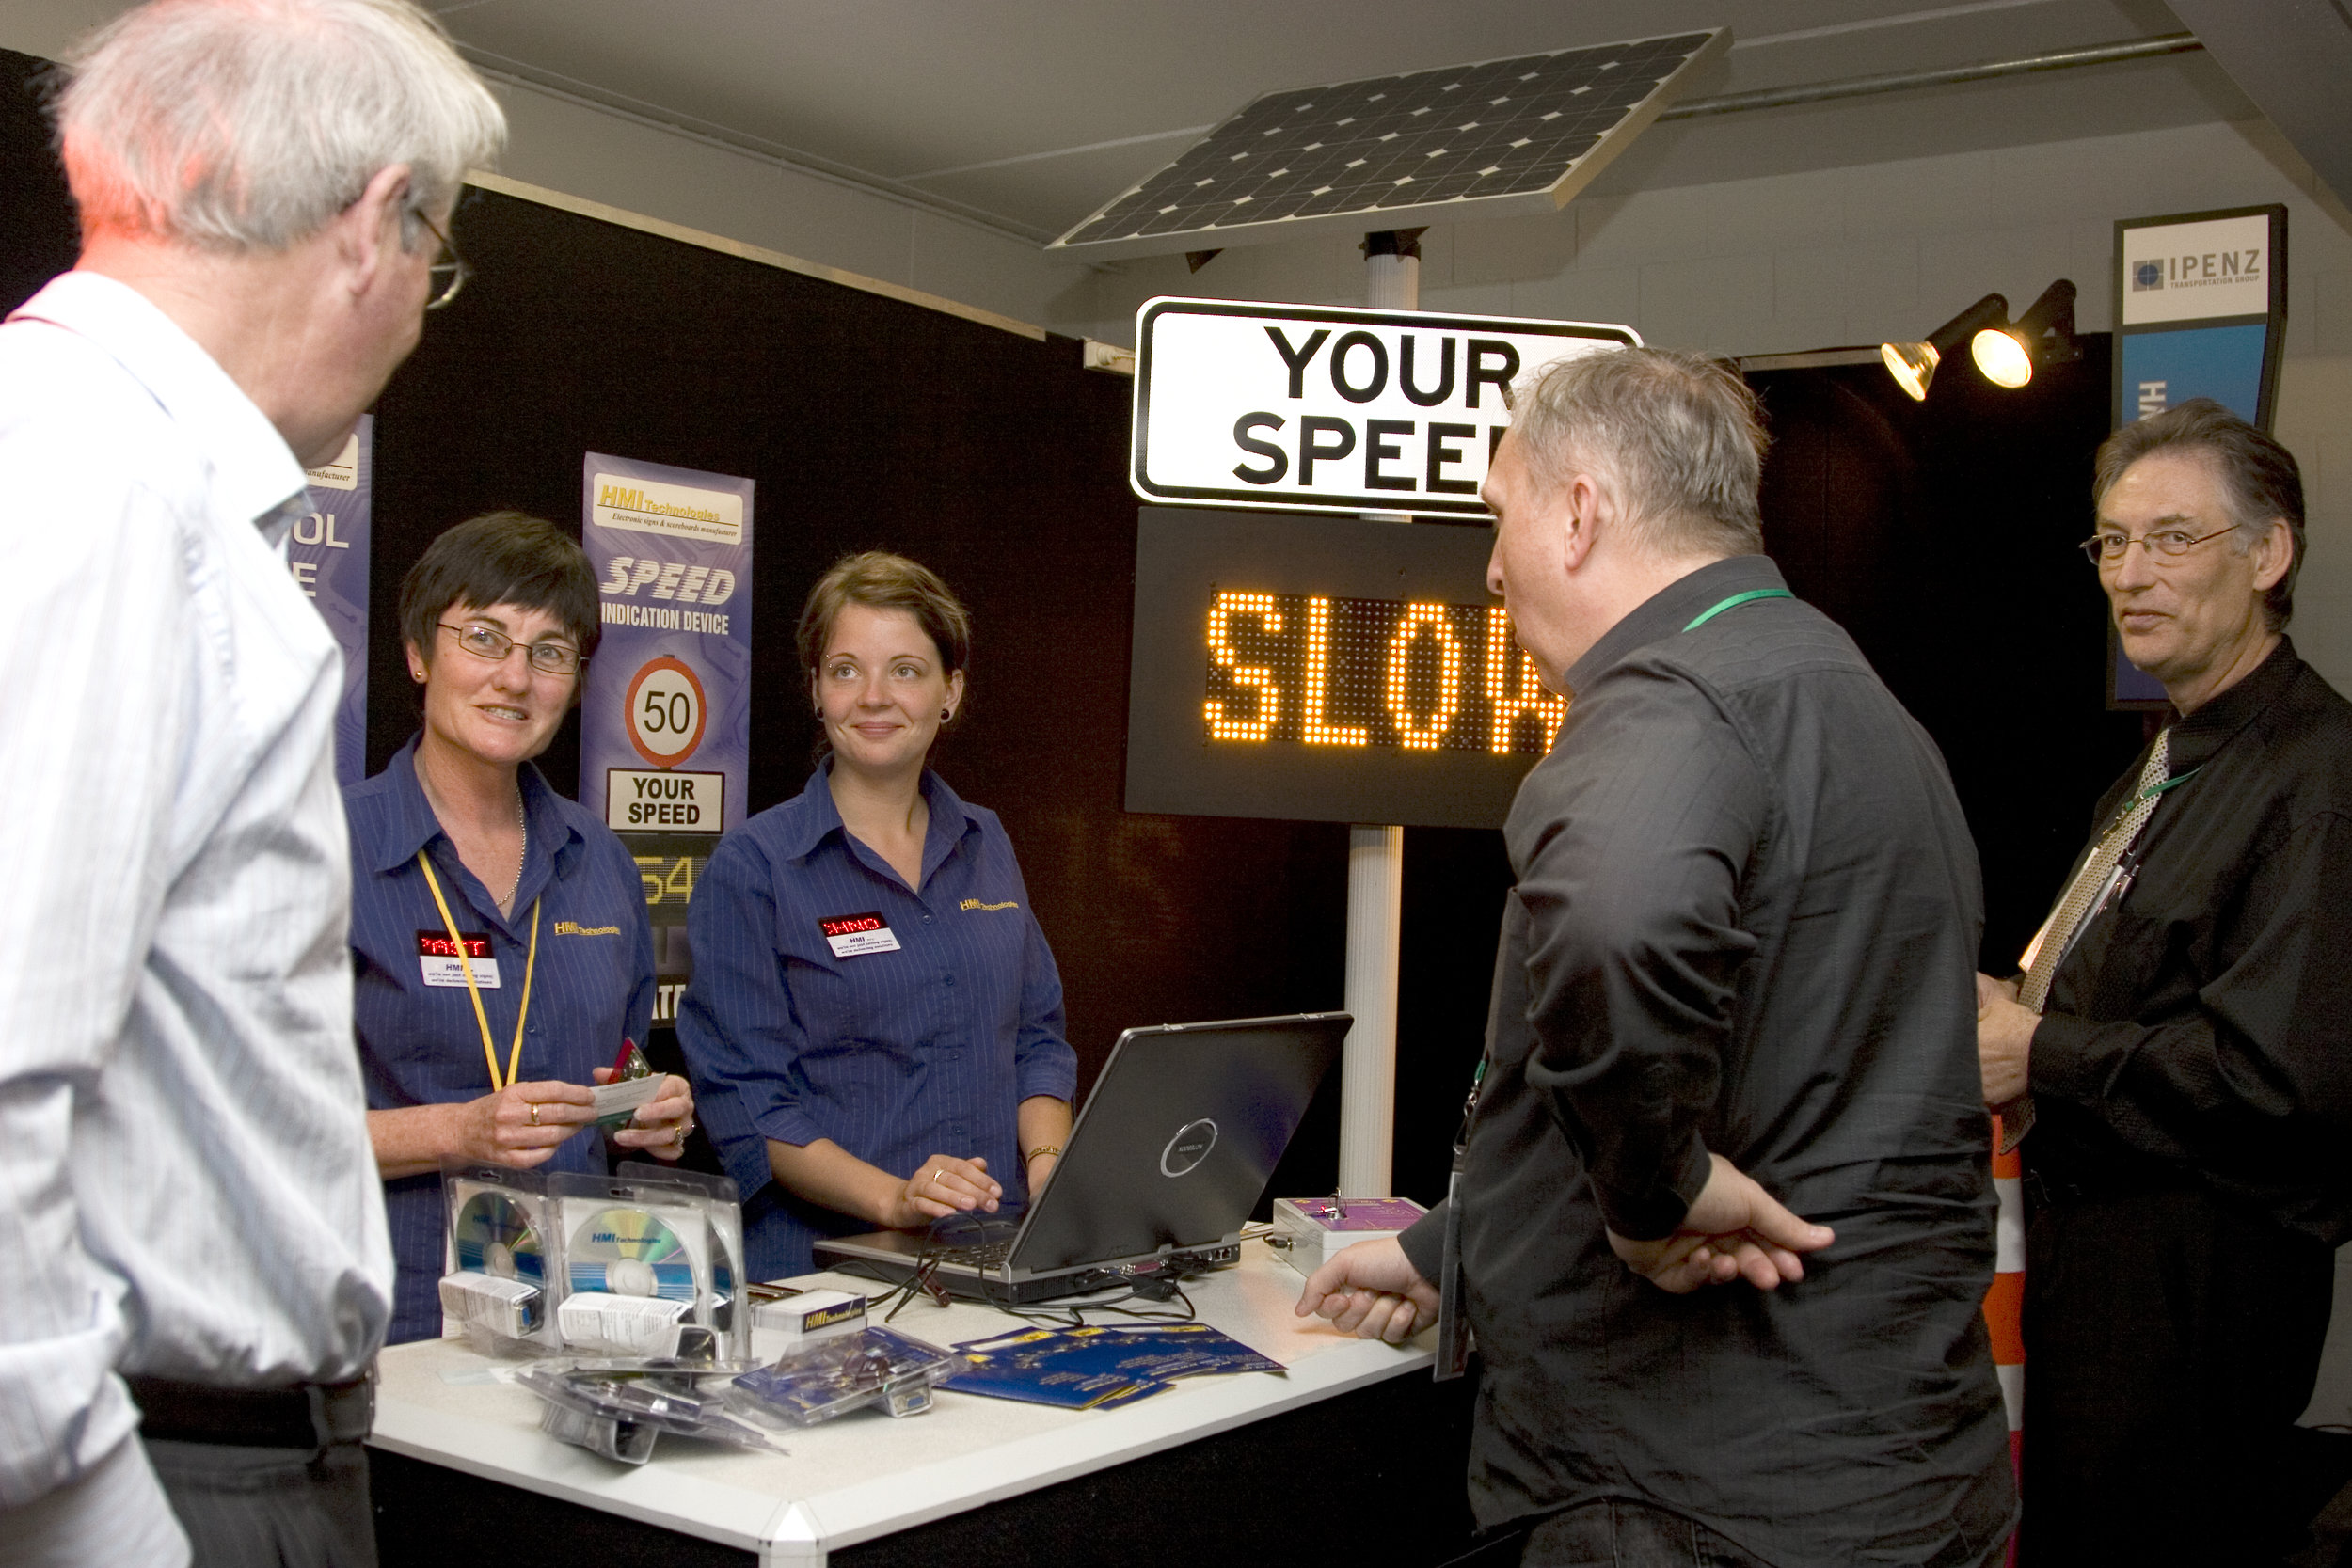 - From feedback received from a number of delegates, sponsors, and exhibitors on the conference overall, there was a general consensus that the overall organisation of the conference was of a high standard, and many commented that this conference was one of the best they had attended. - Bruce Conaghan, Chairperson, IPENZ Transportation Group